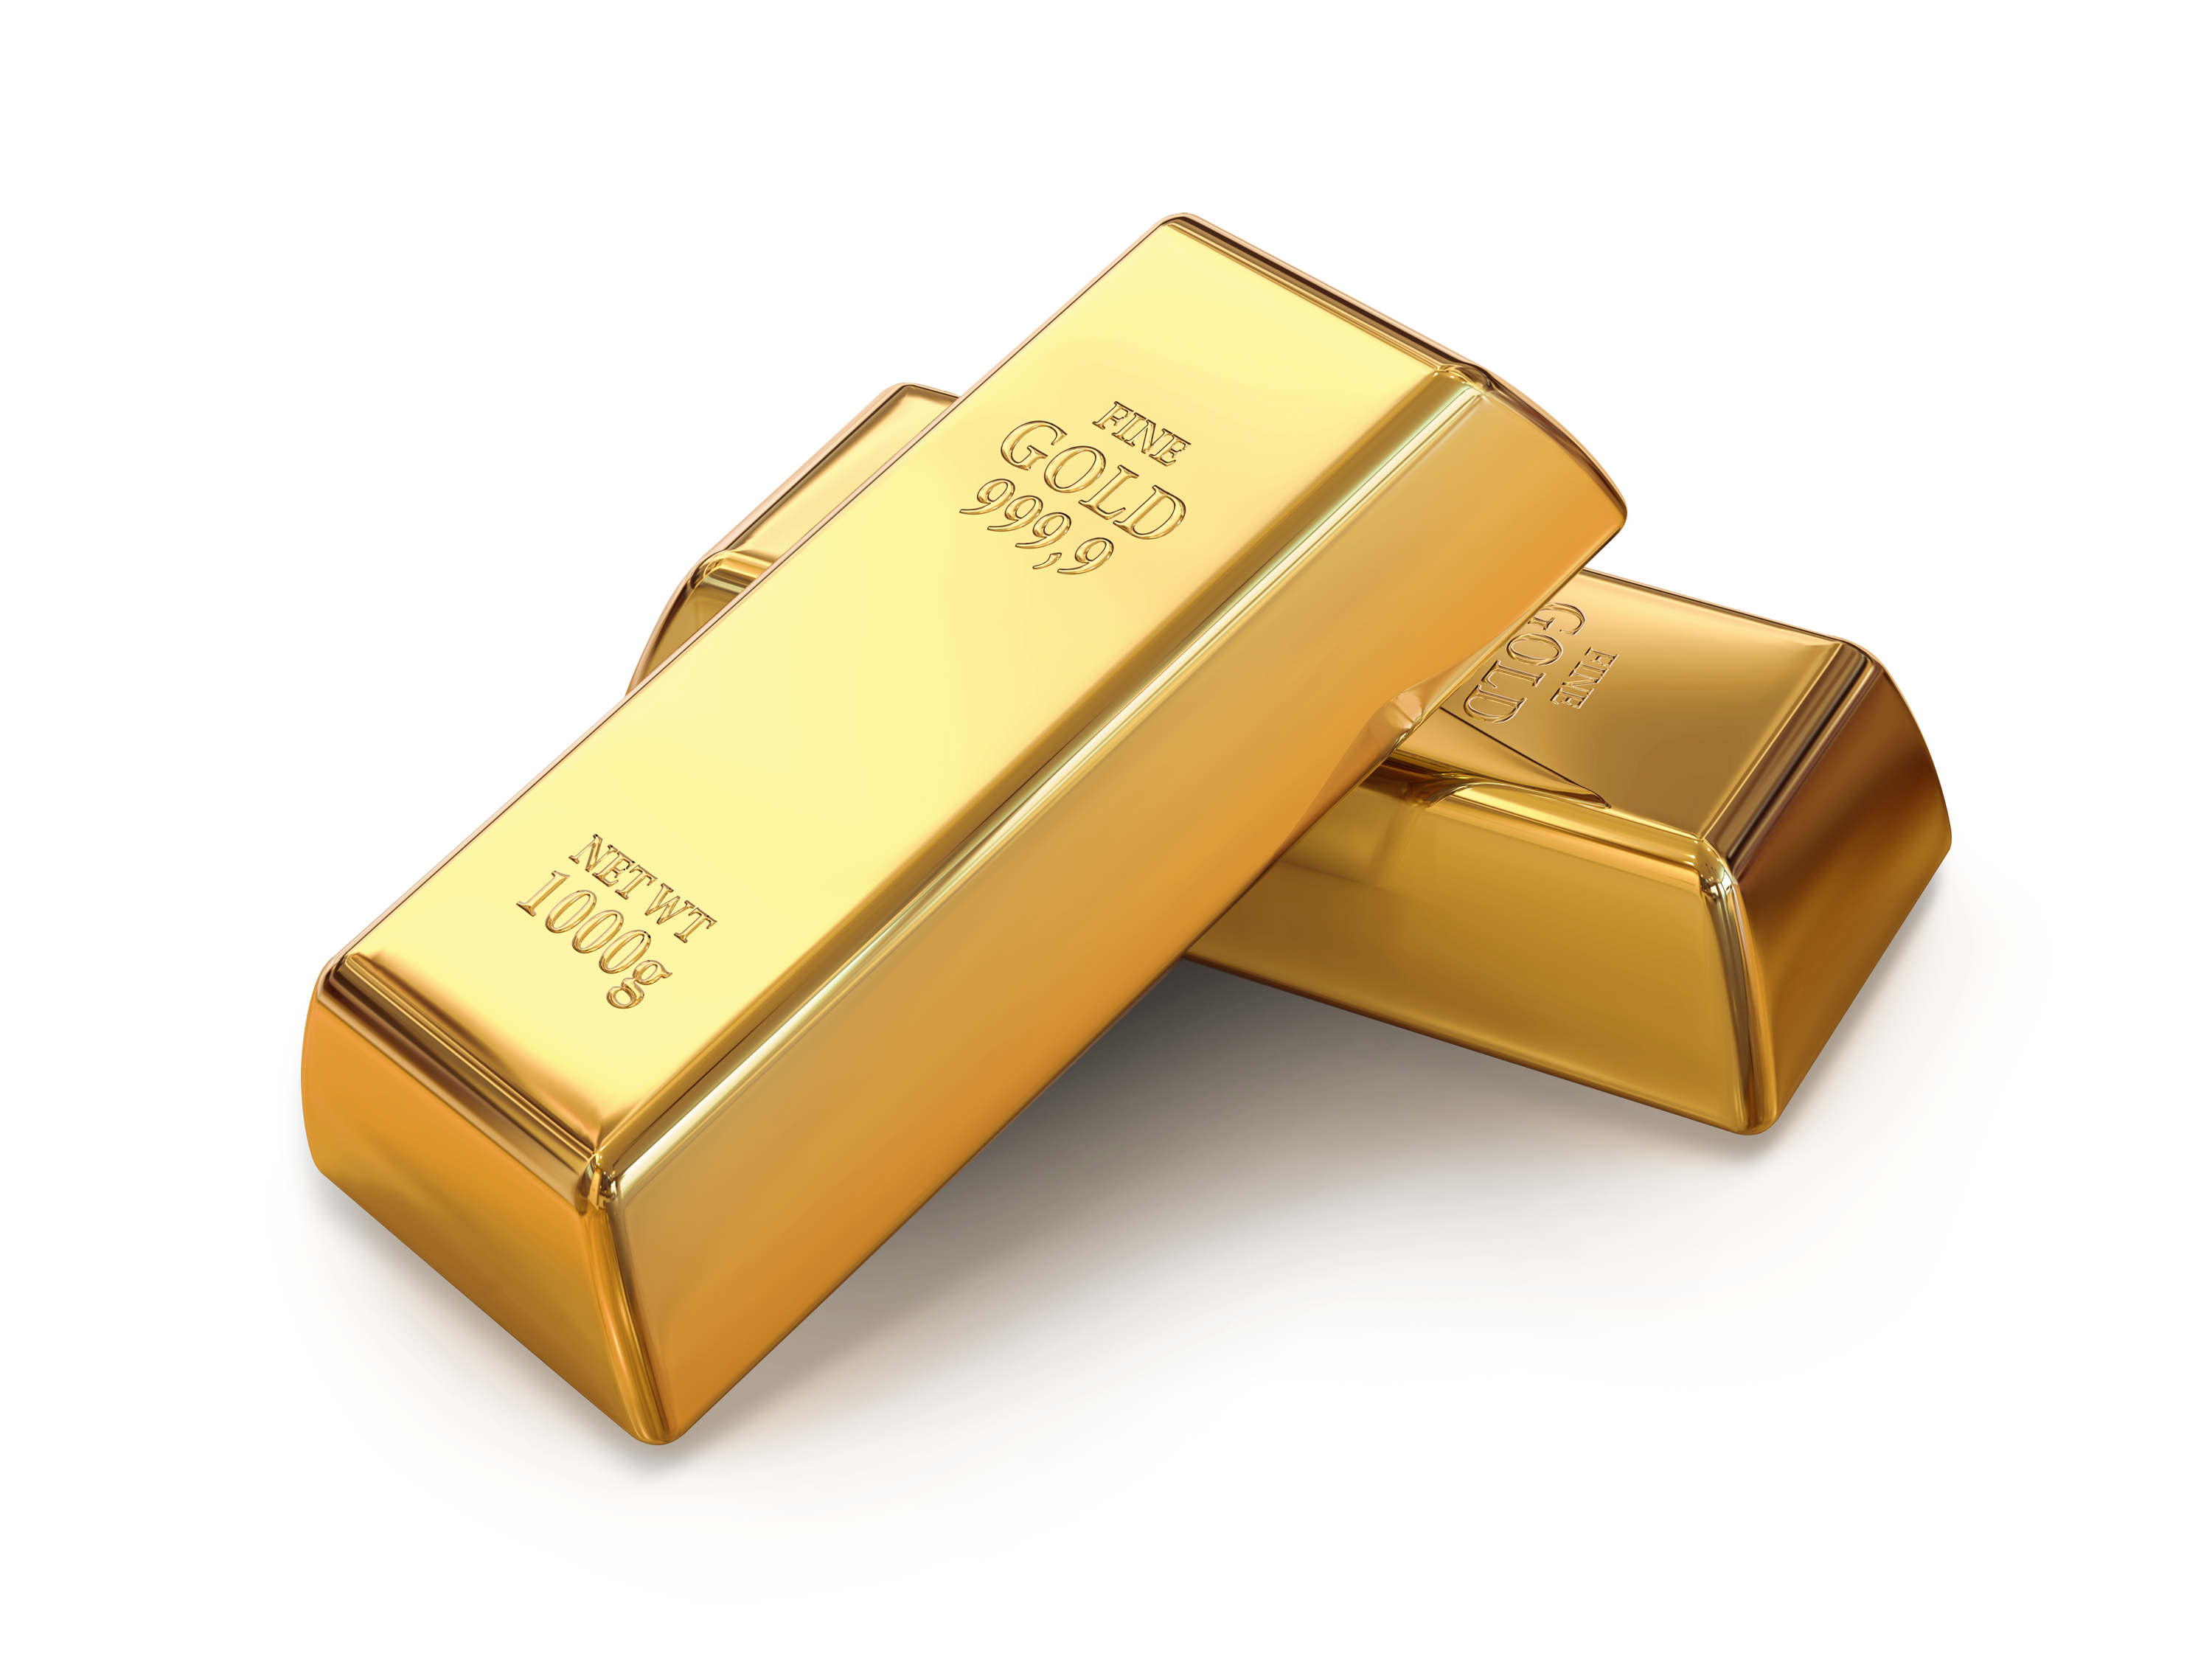 Related Image Buy Gold And Silver Gold Bullion Coins Gold